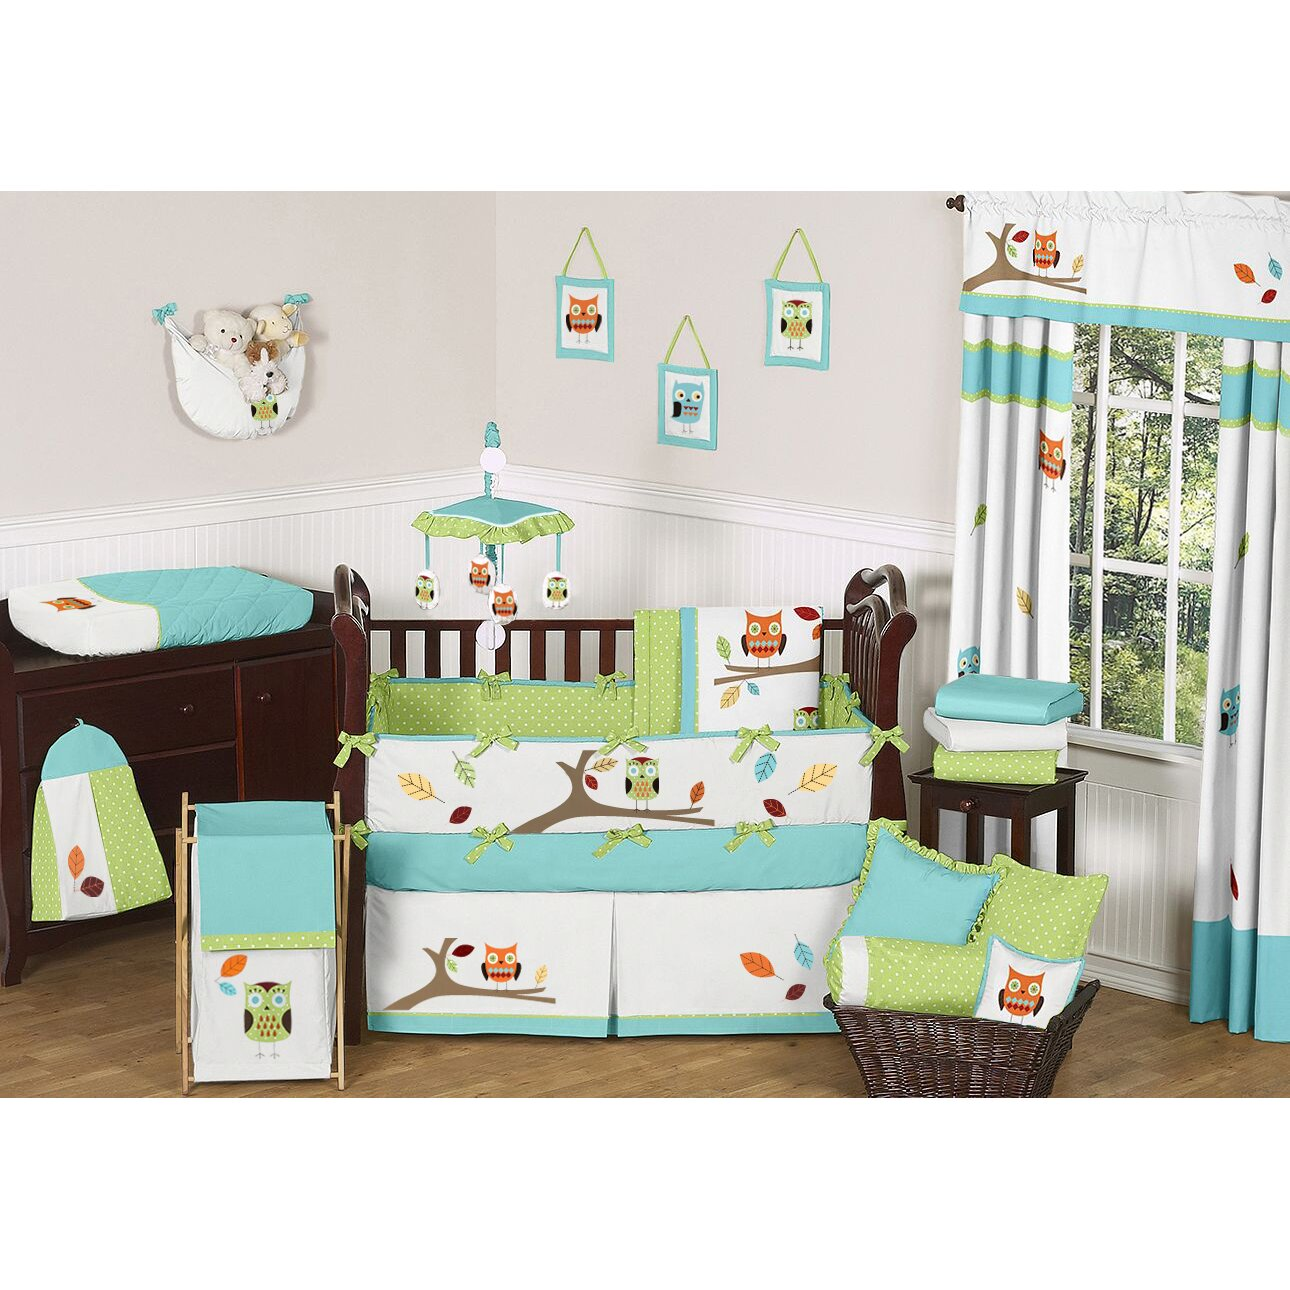 Sweet Jojo Designs Hooty 9 Piece Crib Bedding Set | Wayfair